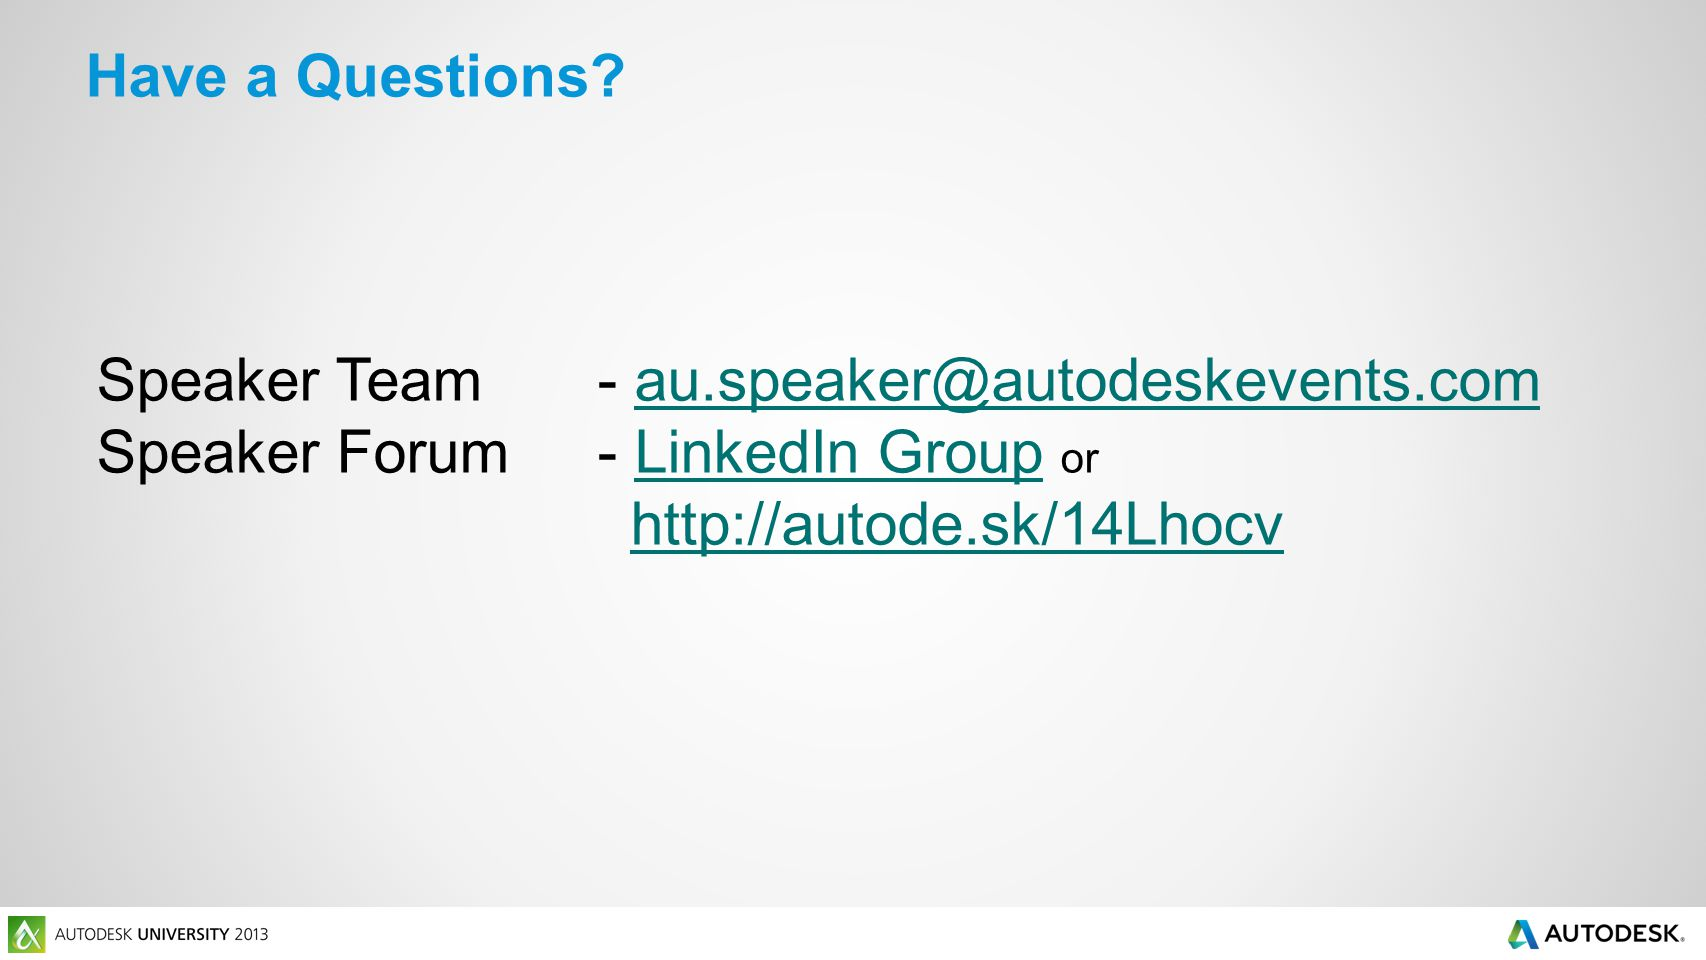 Speaker Team- au.speaker@autodeskevents.comau.speaker@autodeskevents.com Speaker Forum- LinkedIn Group orLinkedIn Group http://autode.sk/14Lhocv Have a Questions